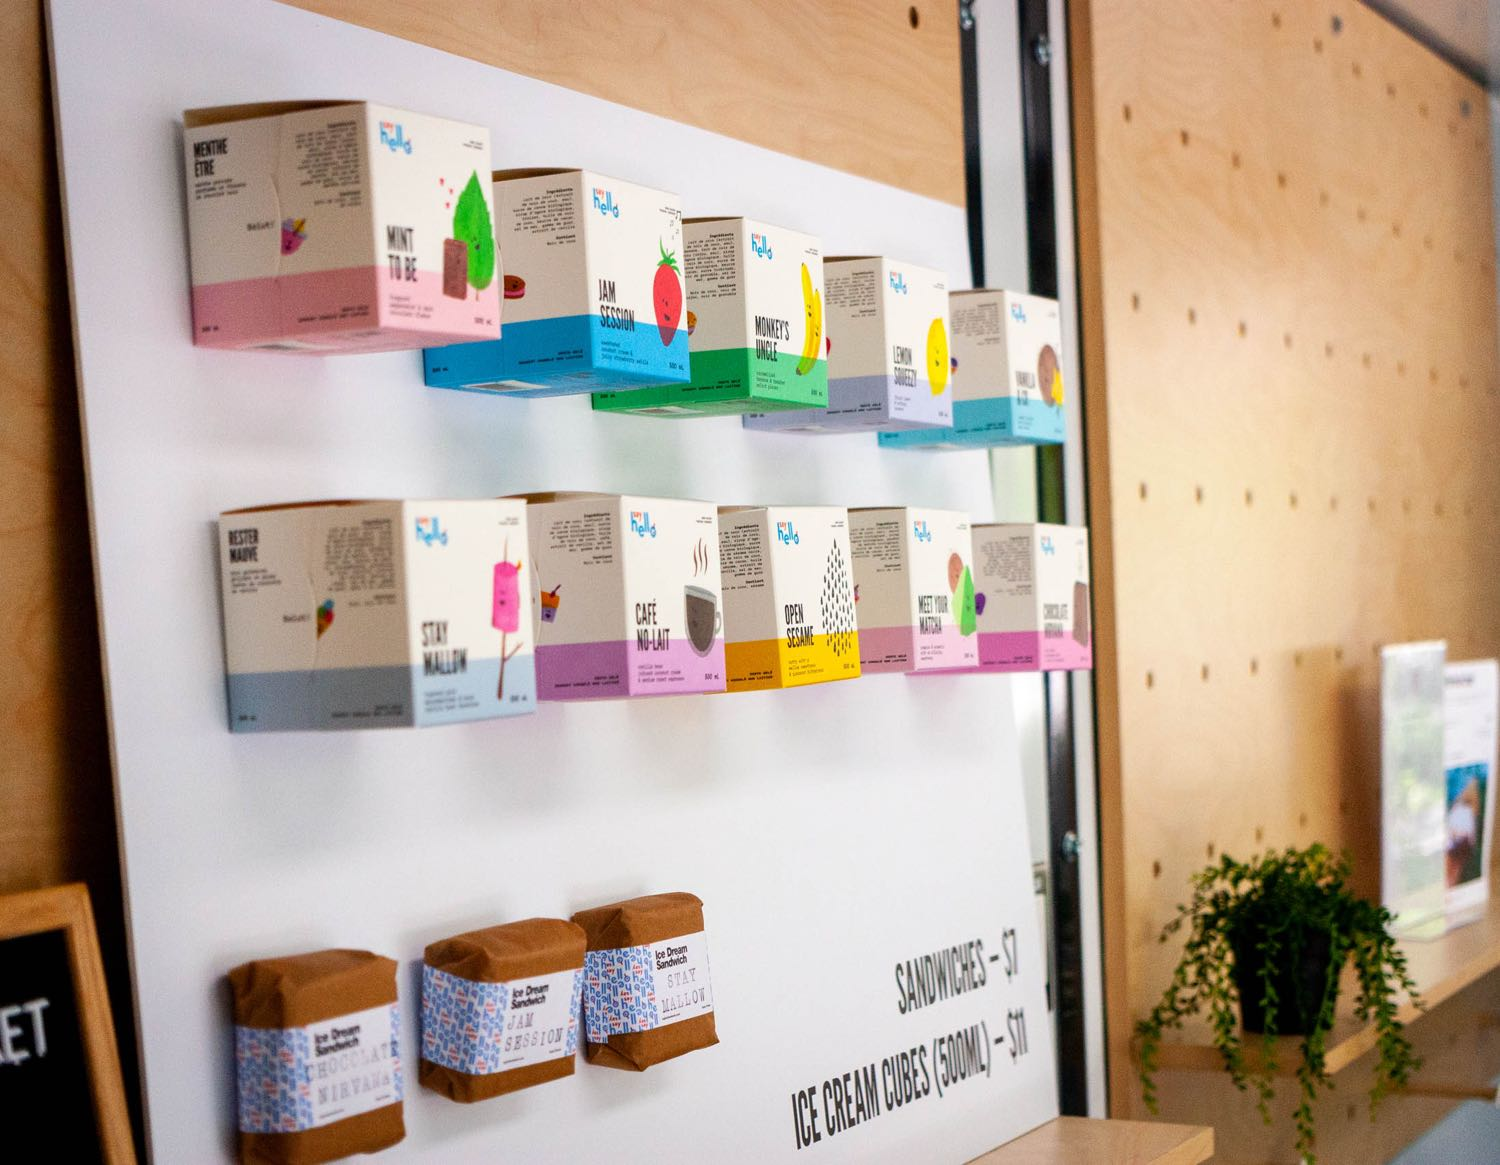 Say Hello Store Menu with physical cubes and sandwiches attached as display — by Dima Yagnyuk.